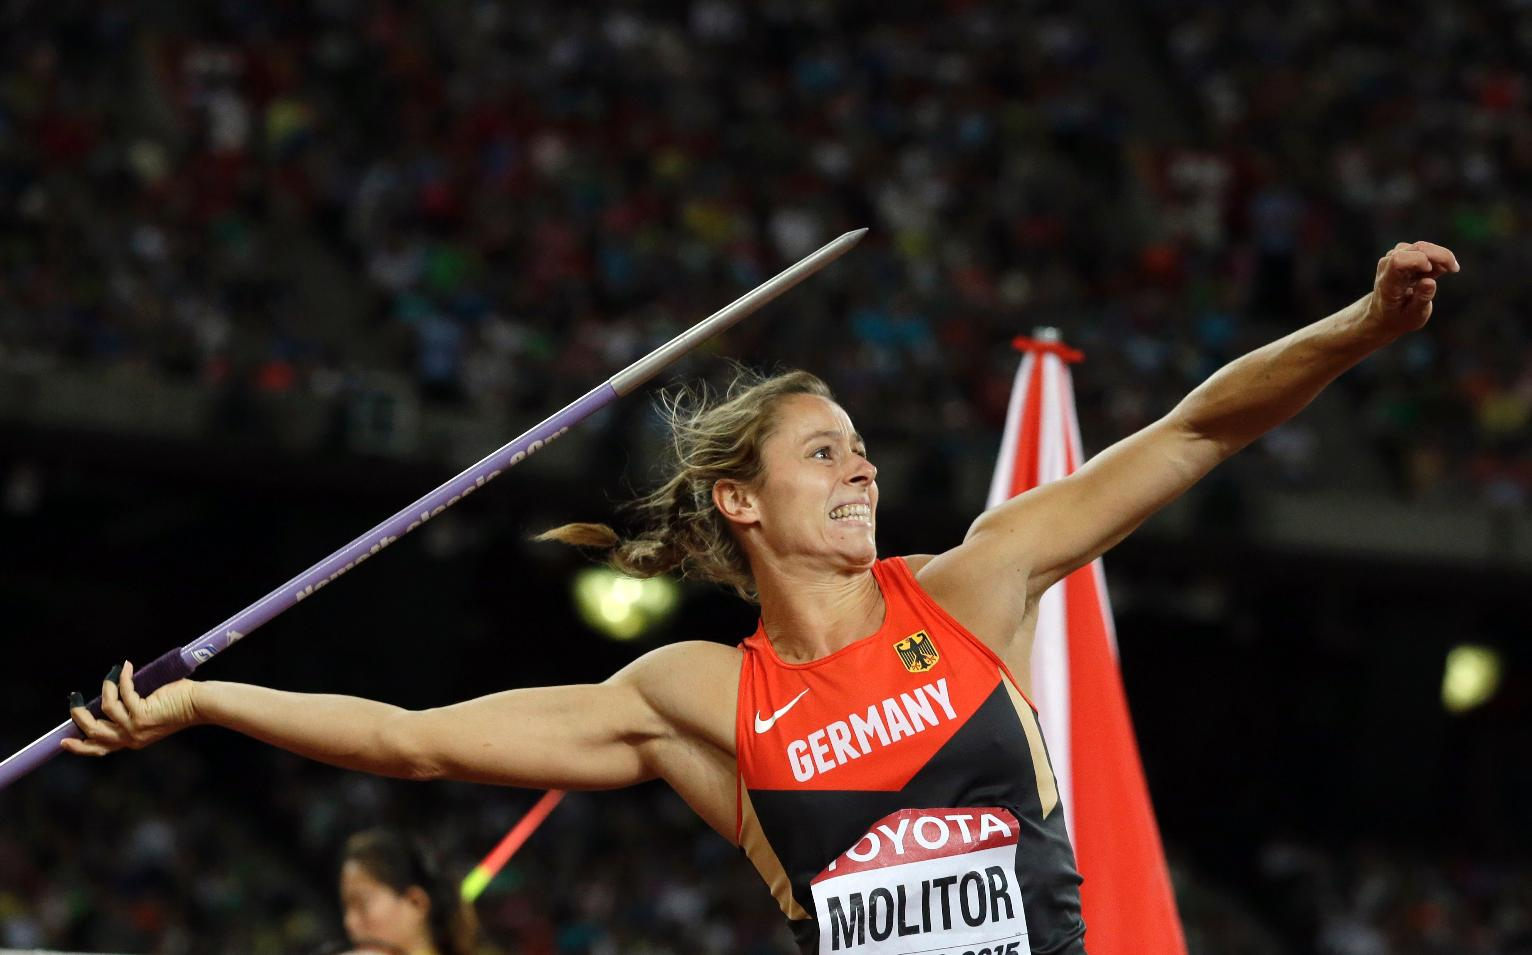 The Latest Molitor Wins Women S Javelin With Last Throw